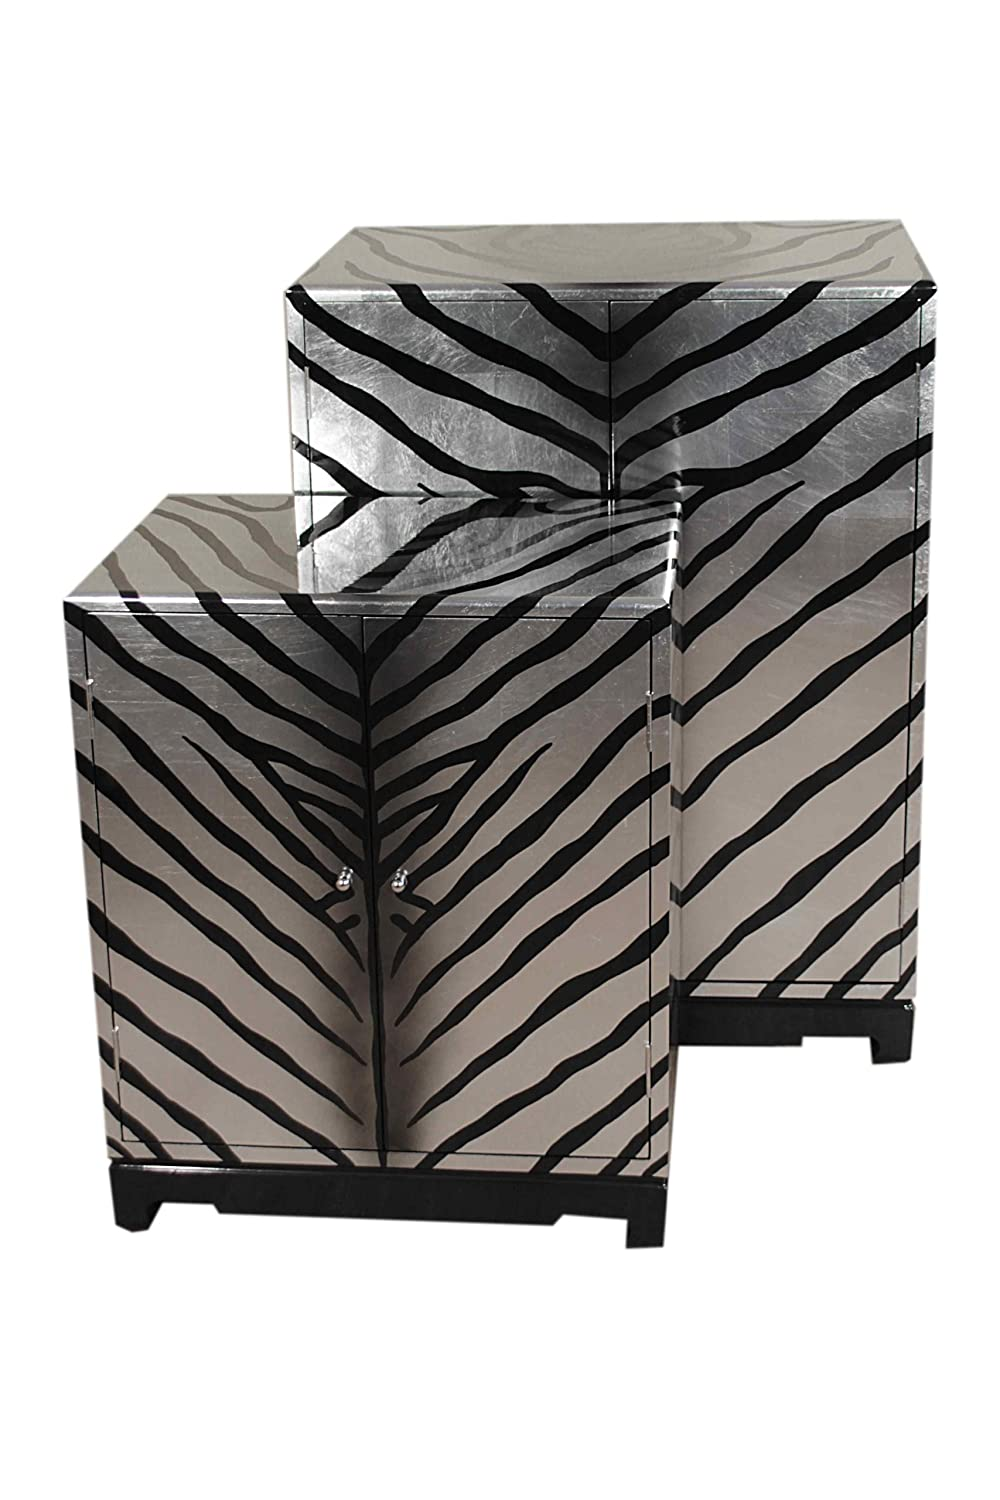 Casa Collection / Art for living by Jänig 10863 Schränke, 2-er Set, 2-türig, Zebra, Lack, groß 102 x 74 x 43 cm, klein 77 x 61 x 35 cm